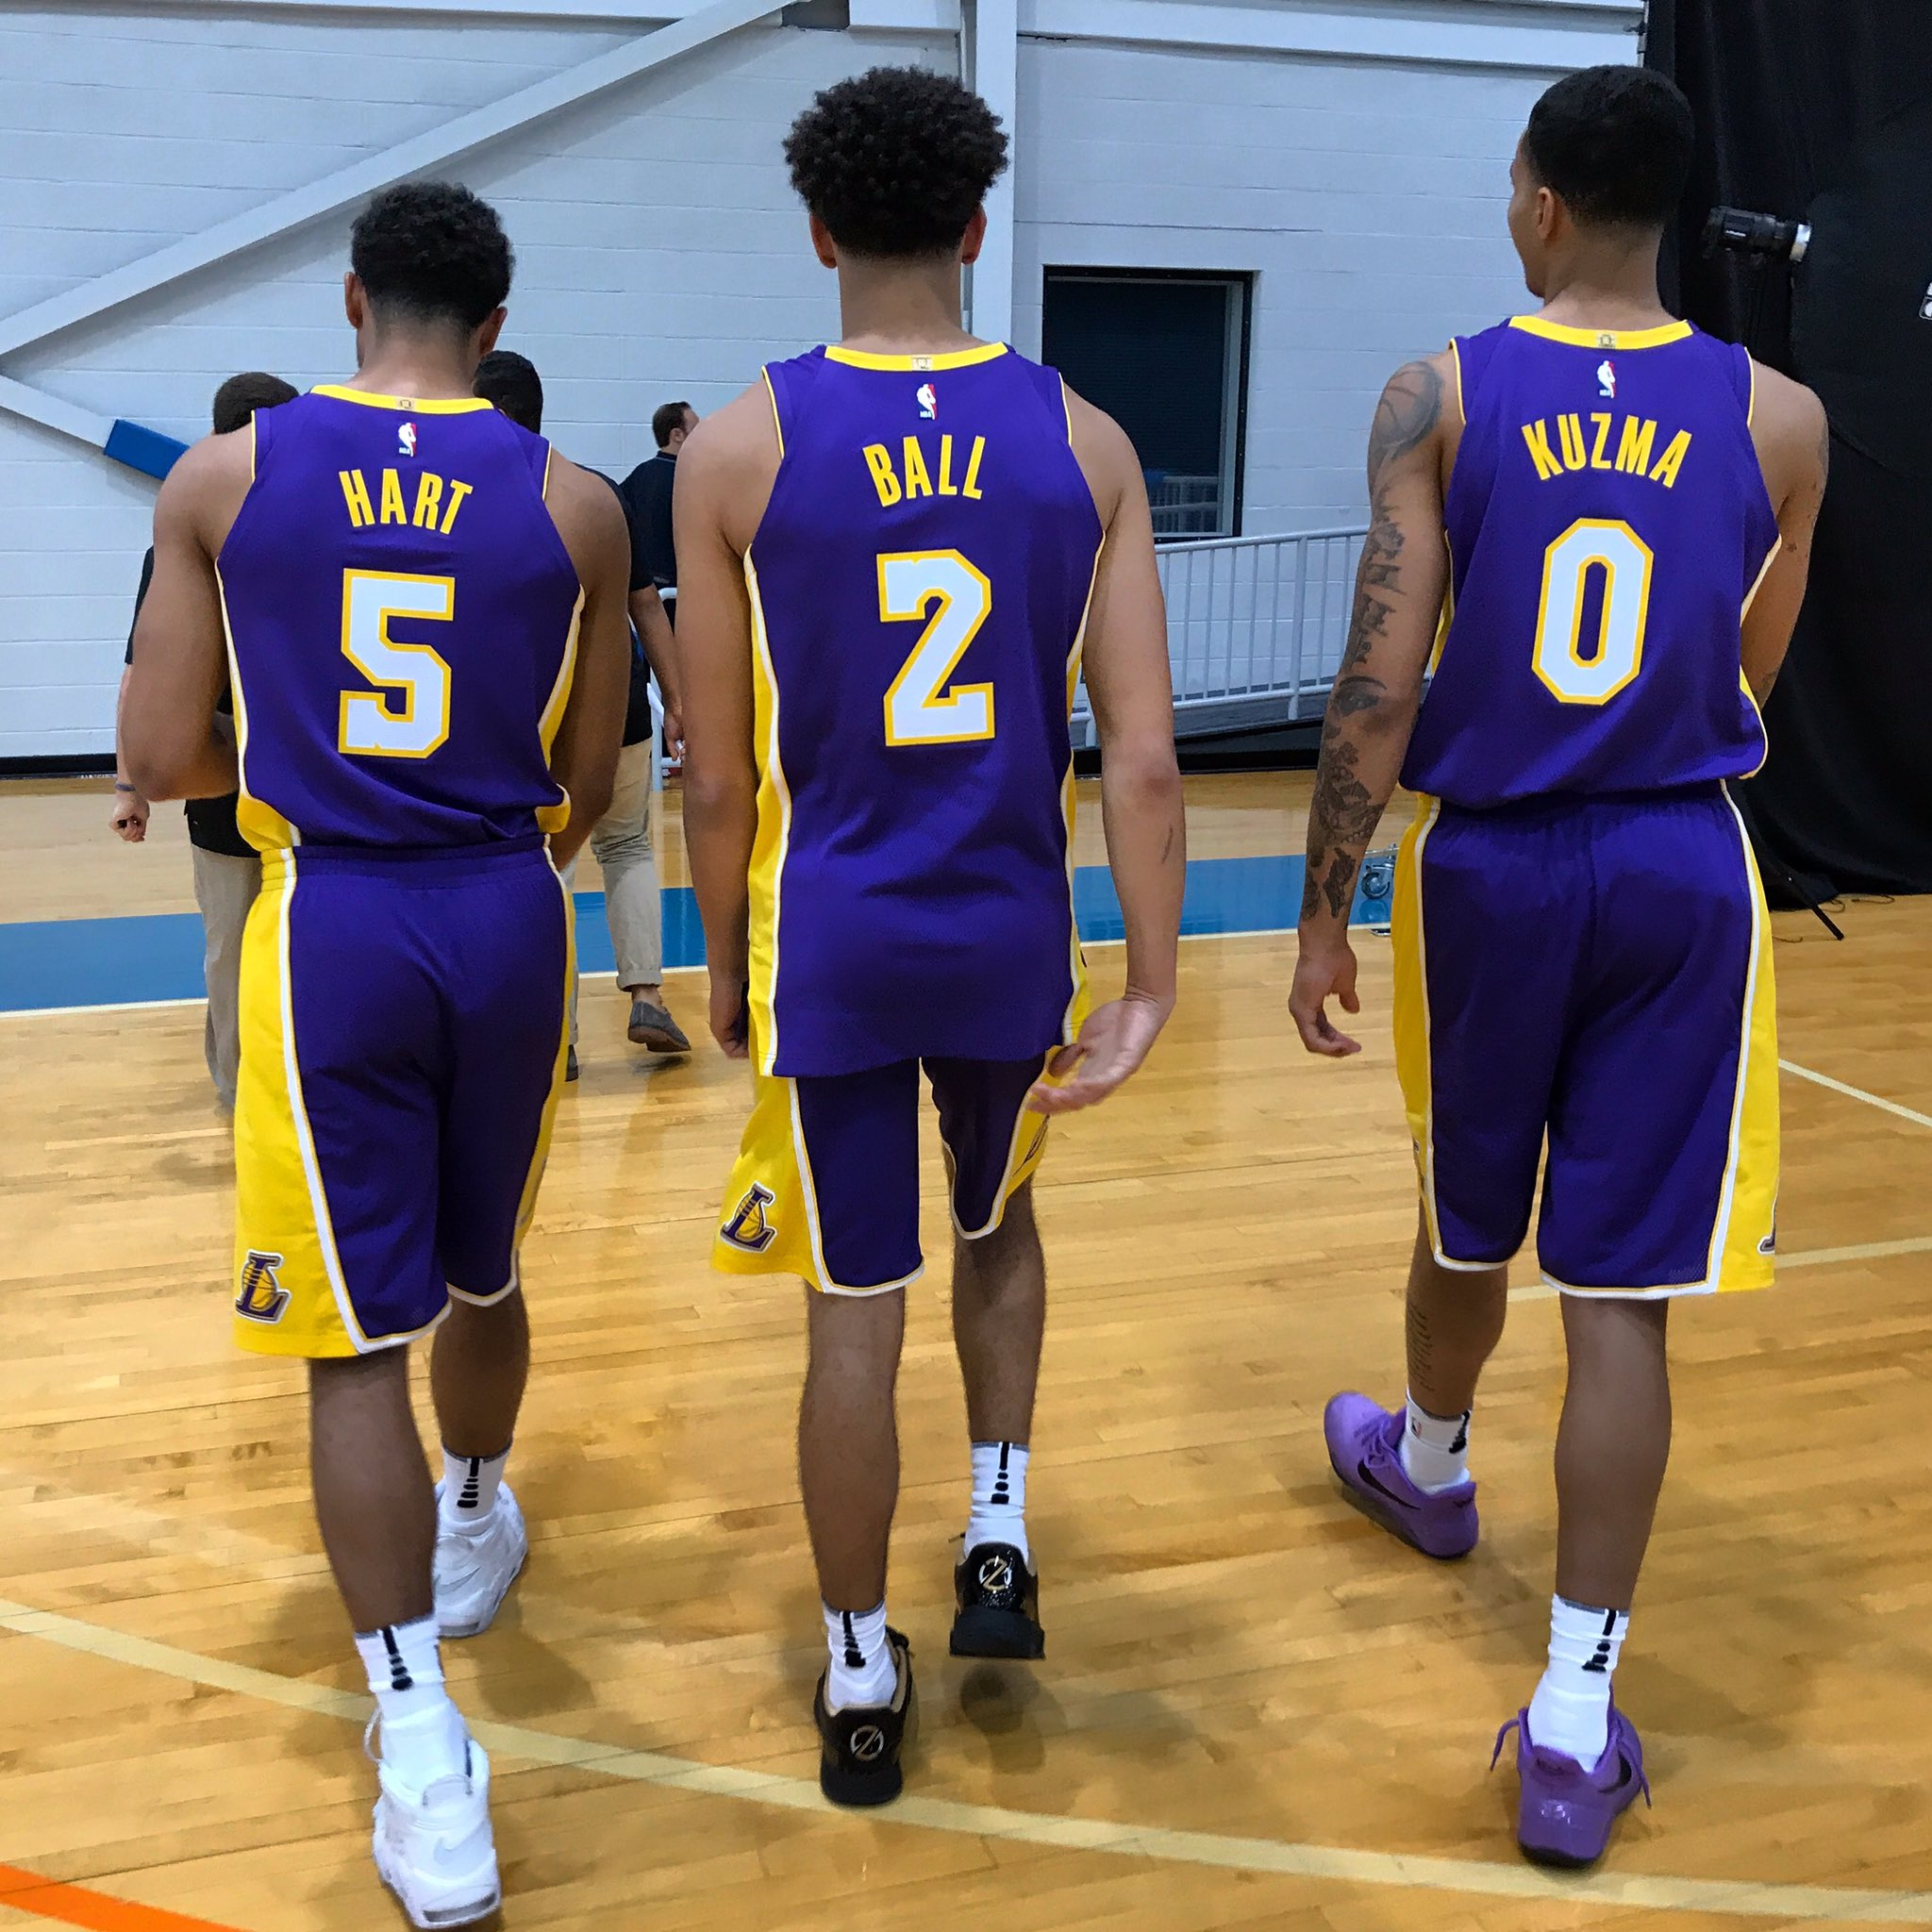 The @Lakers rooks on the move at the #PaniniNBARookie shoot. https://t.co/dvrHeQ0YU4